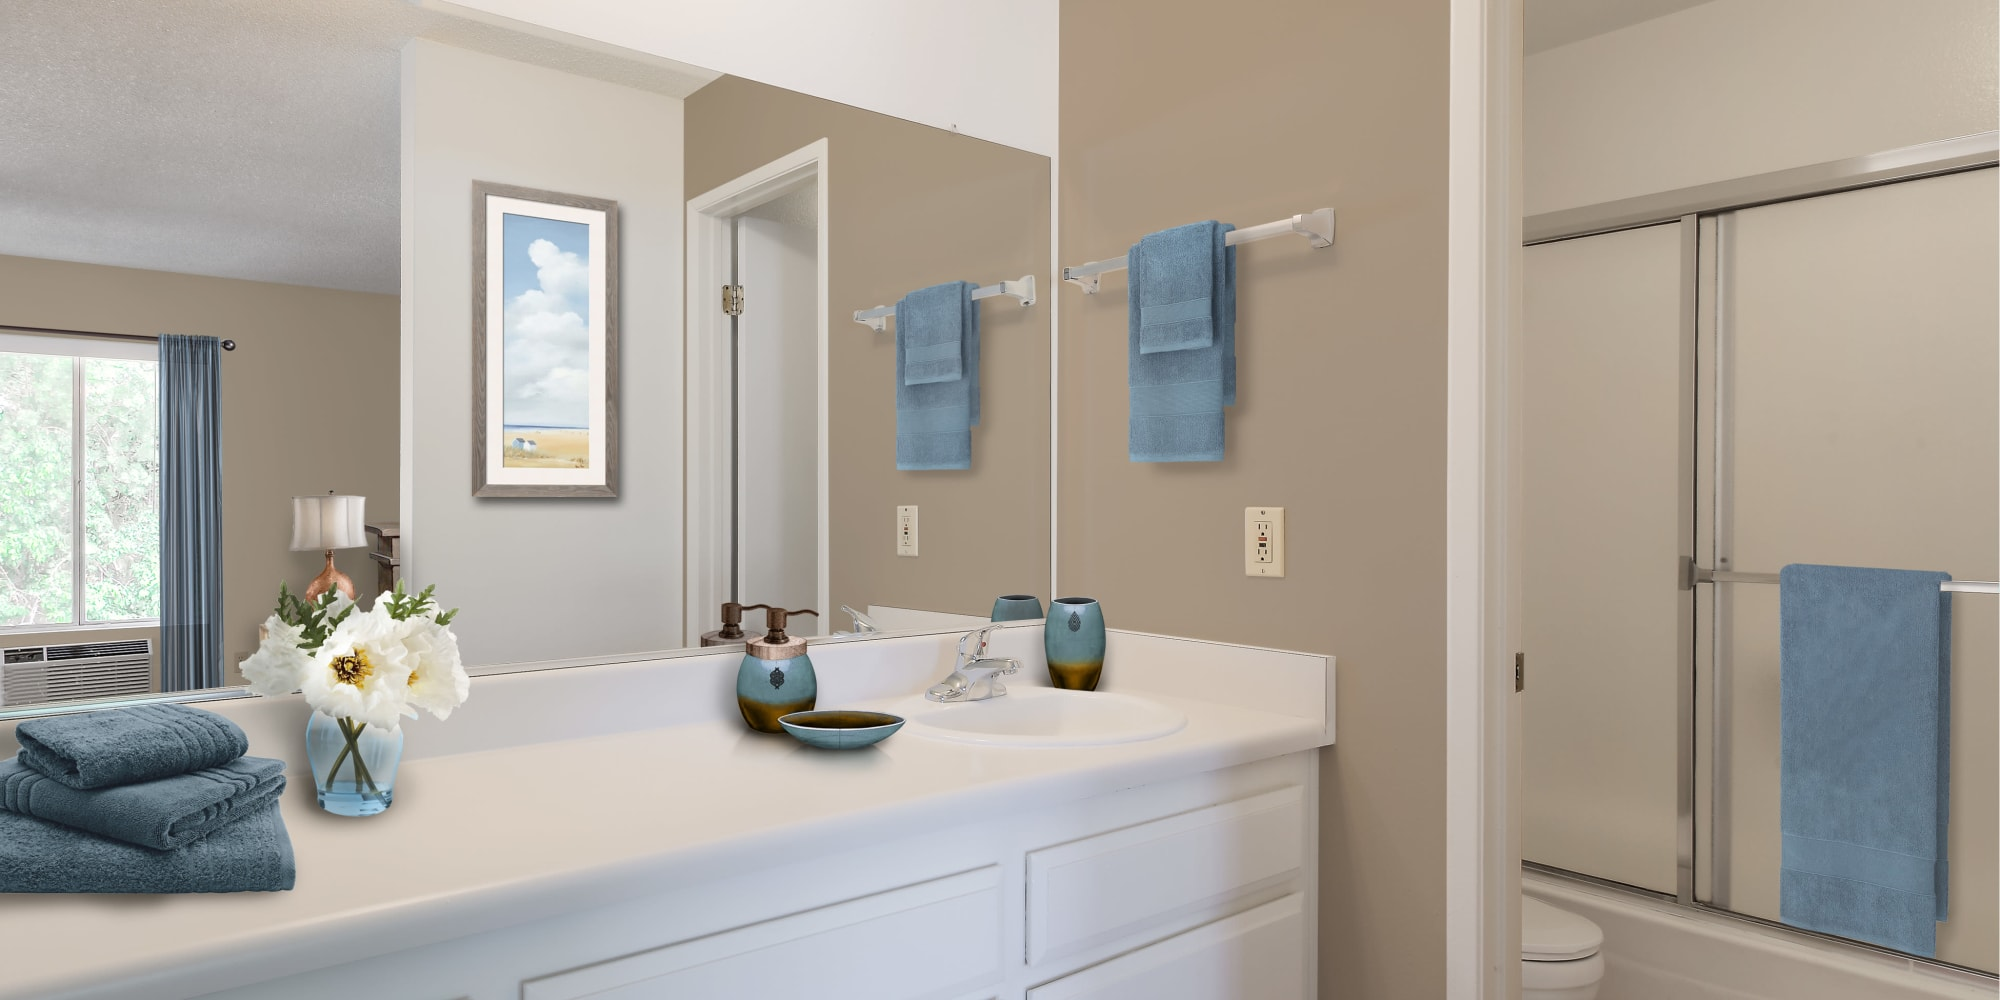 Vanity and shower in a model home's bathroom at Village Pointe in Northridge, California